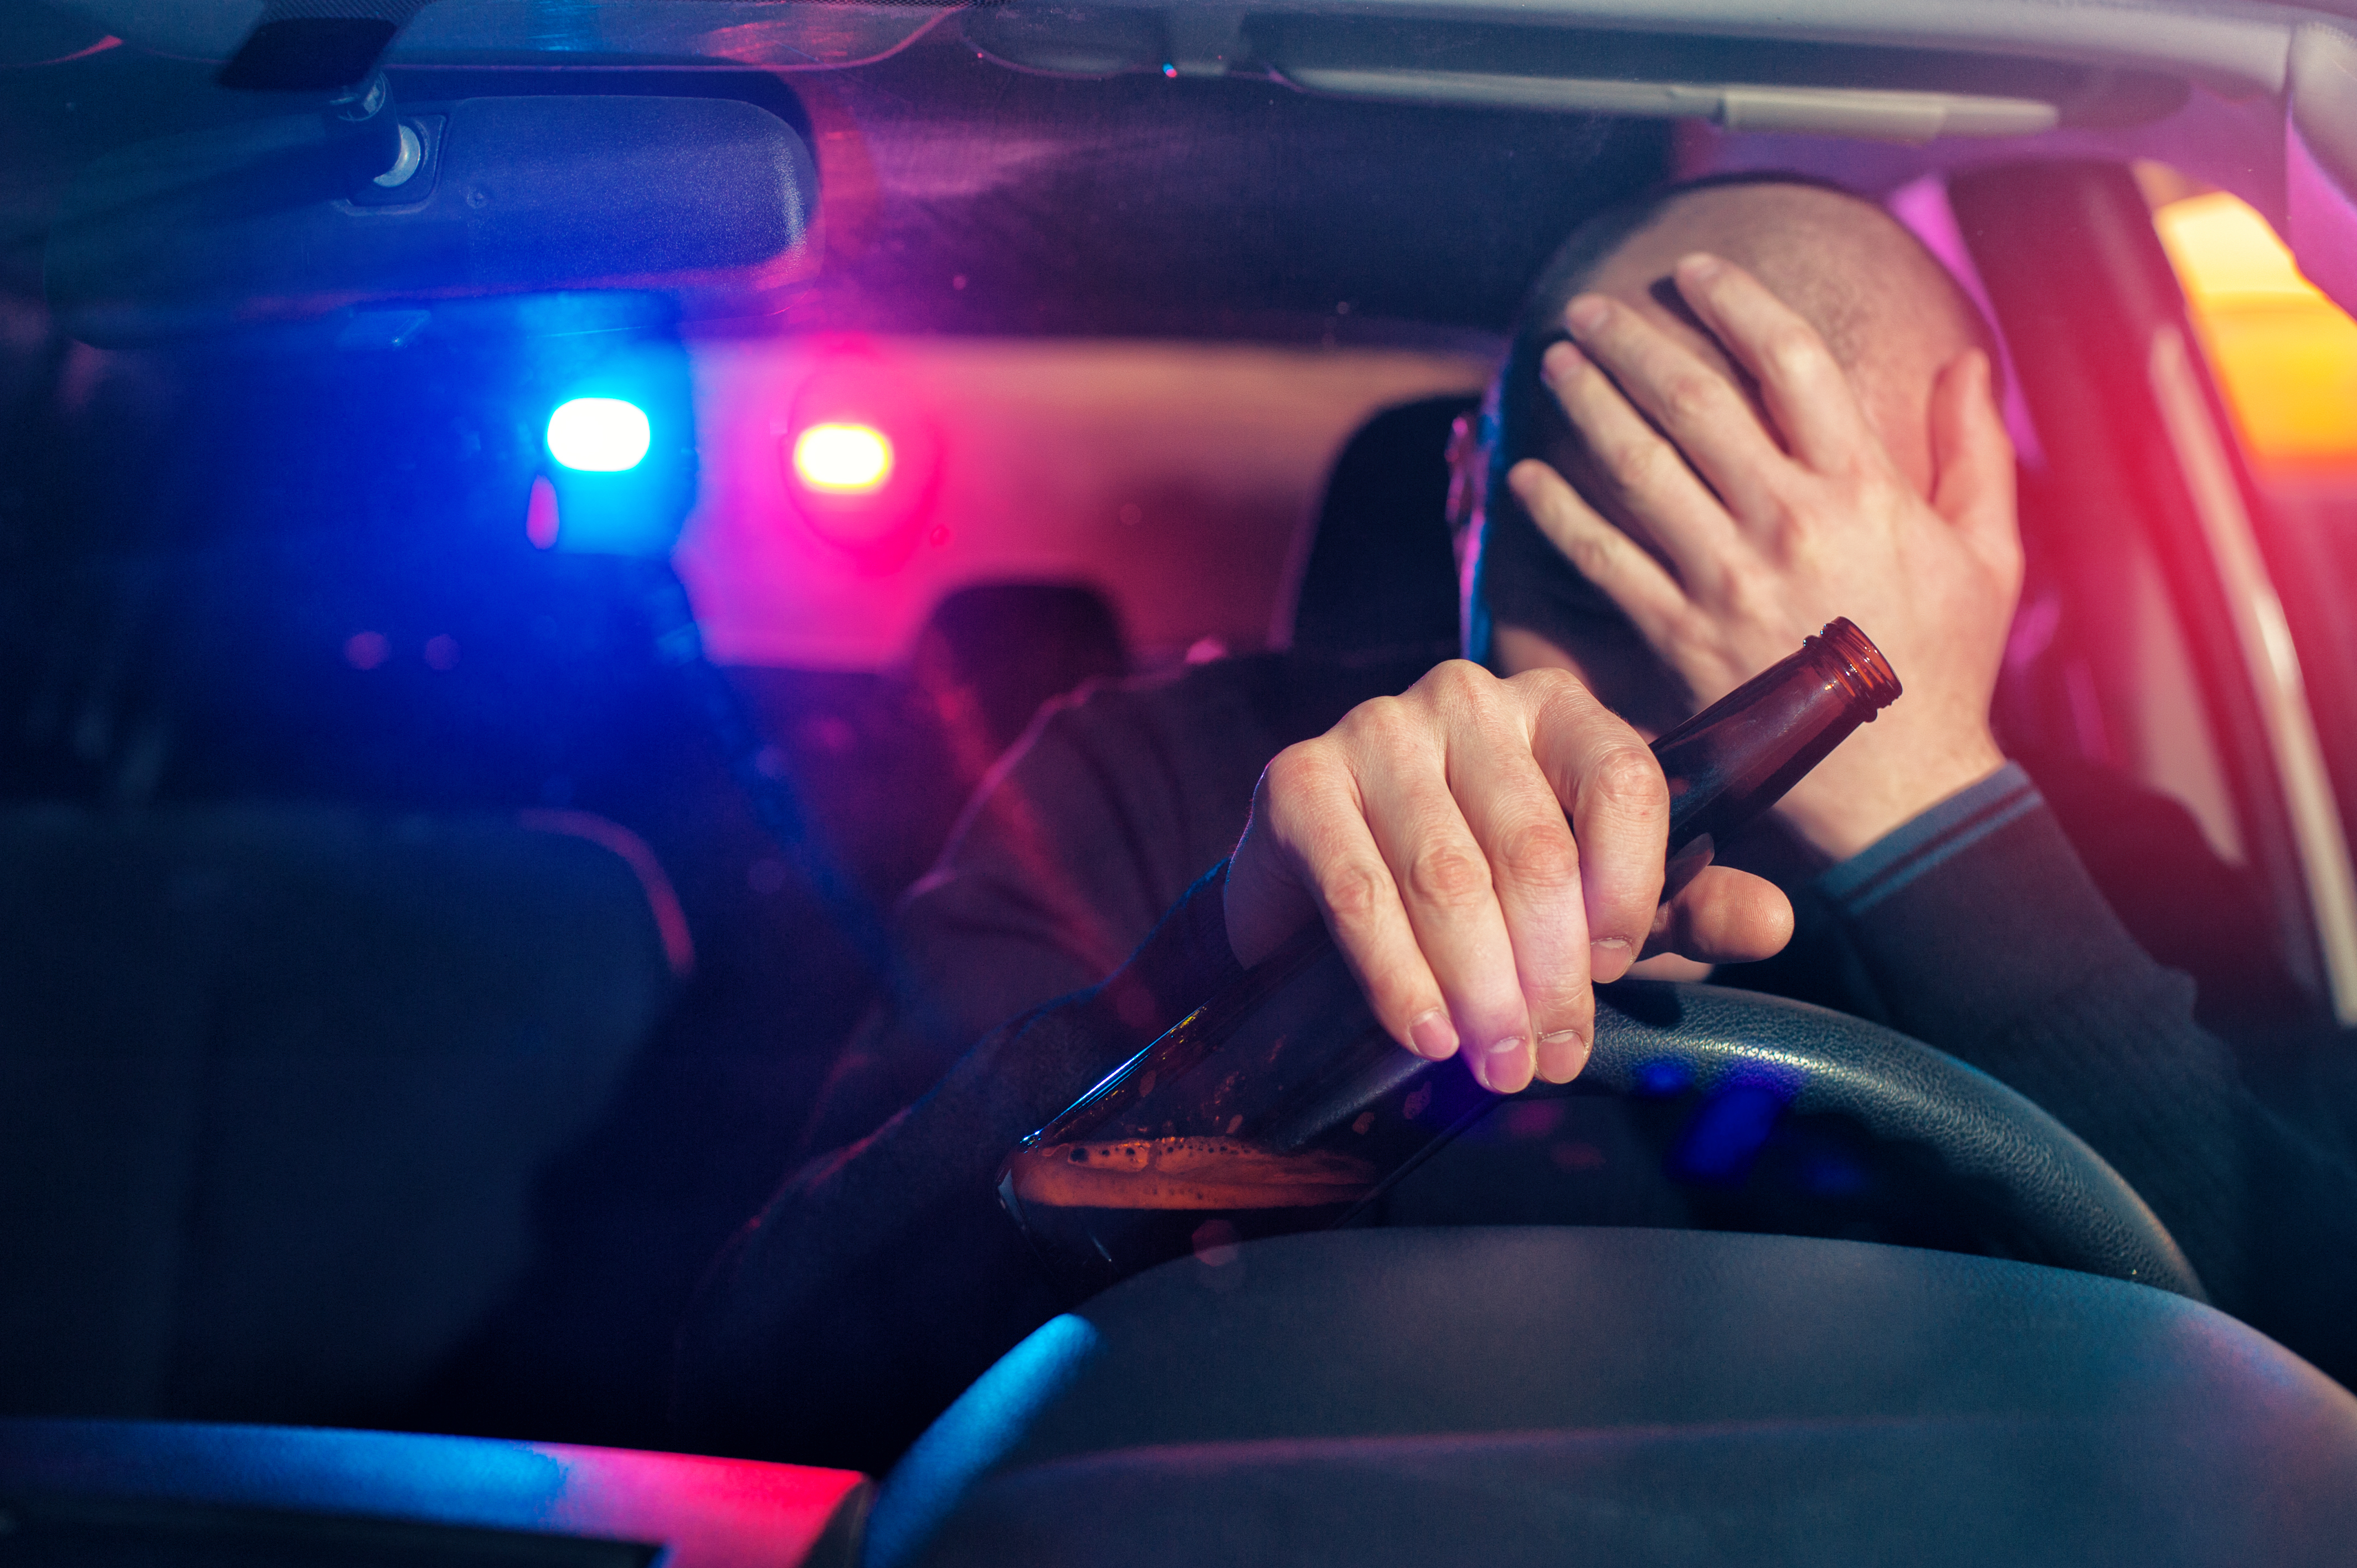 Police pull a man over for drunk driving (Shutterstock/Paul Biryukov)